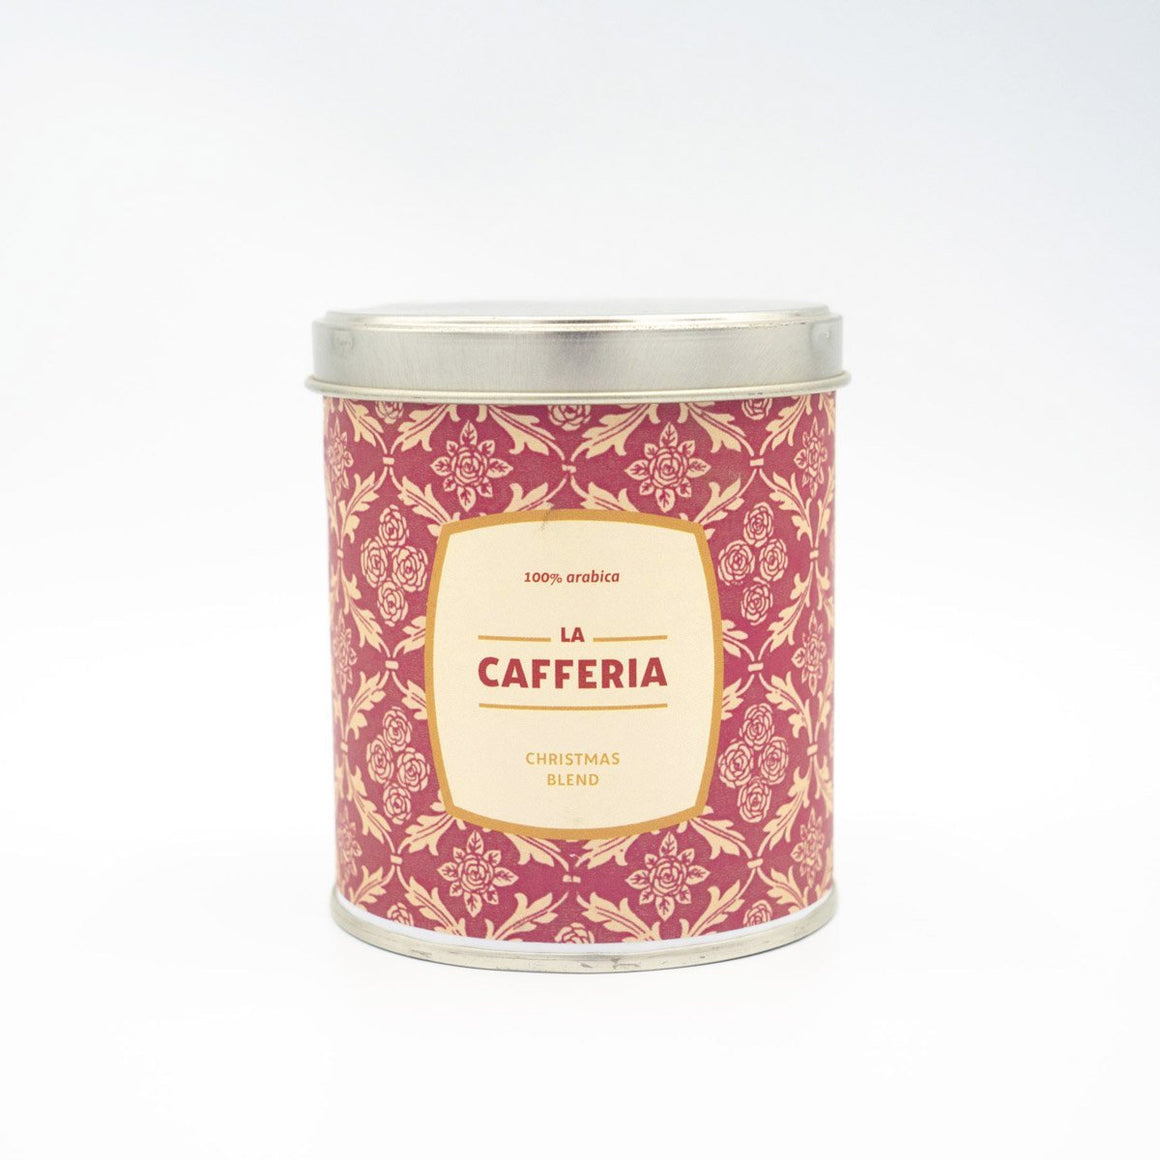 The Christmas Blend Espresso Coffee Limited Edition - La Cafferia - PepeGusto